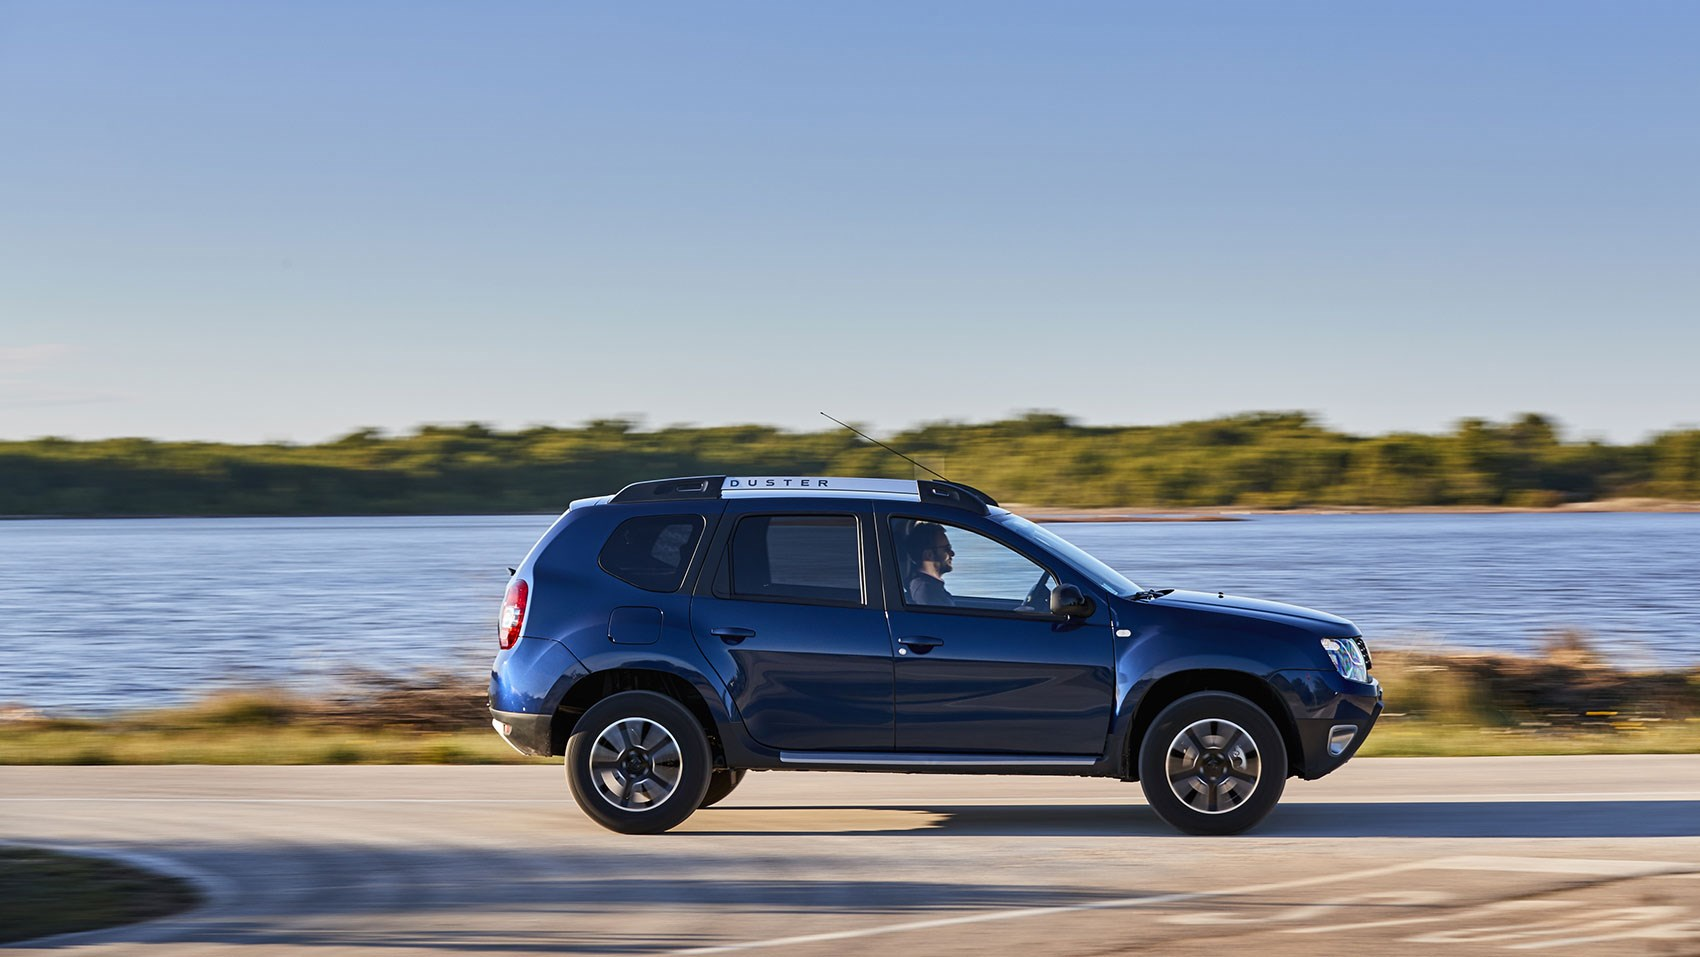 dacia duster prestige dci 110 edc 2017 review by car. Black Bedroom Furniture Sets. Home Design Ideas